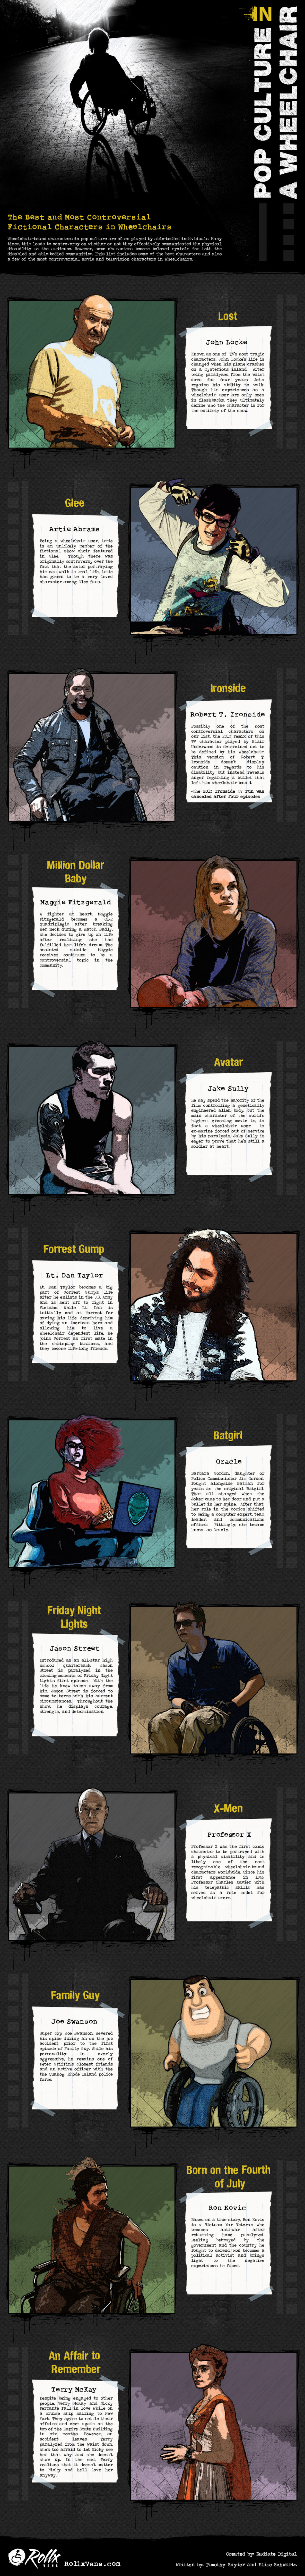 Pop Culture in a Wheelchair Infographic